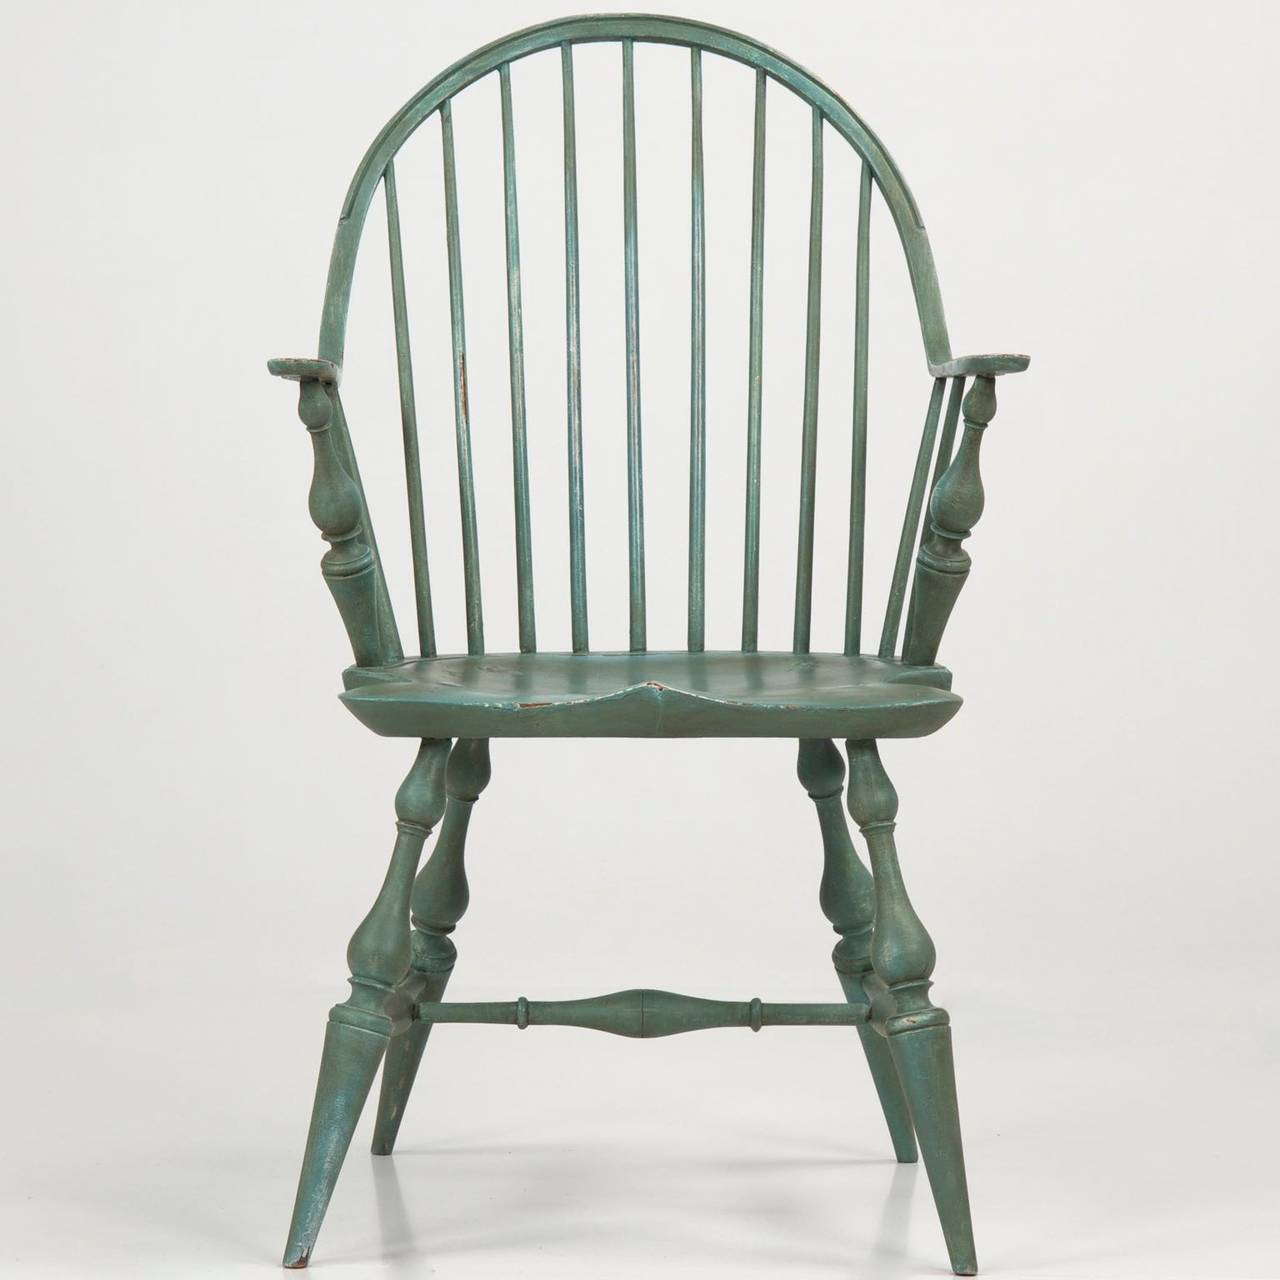 Genial American Continuous Arm Windsor Style Chair, 20th Century For Sale. This  Very Attractive Benchmade Reproduction Of The 18th Century New England  Originals Is ...